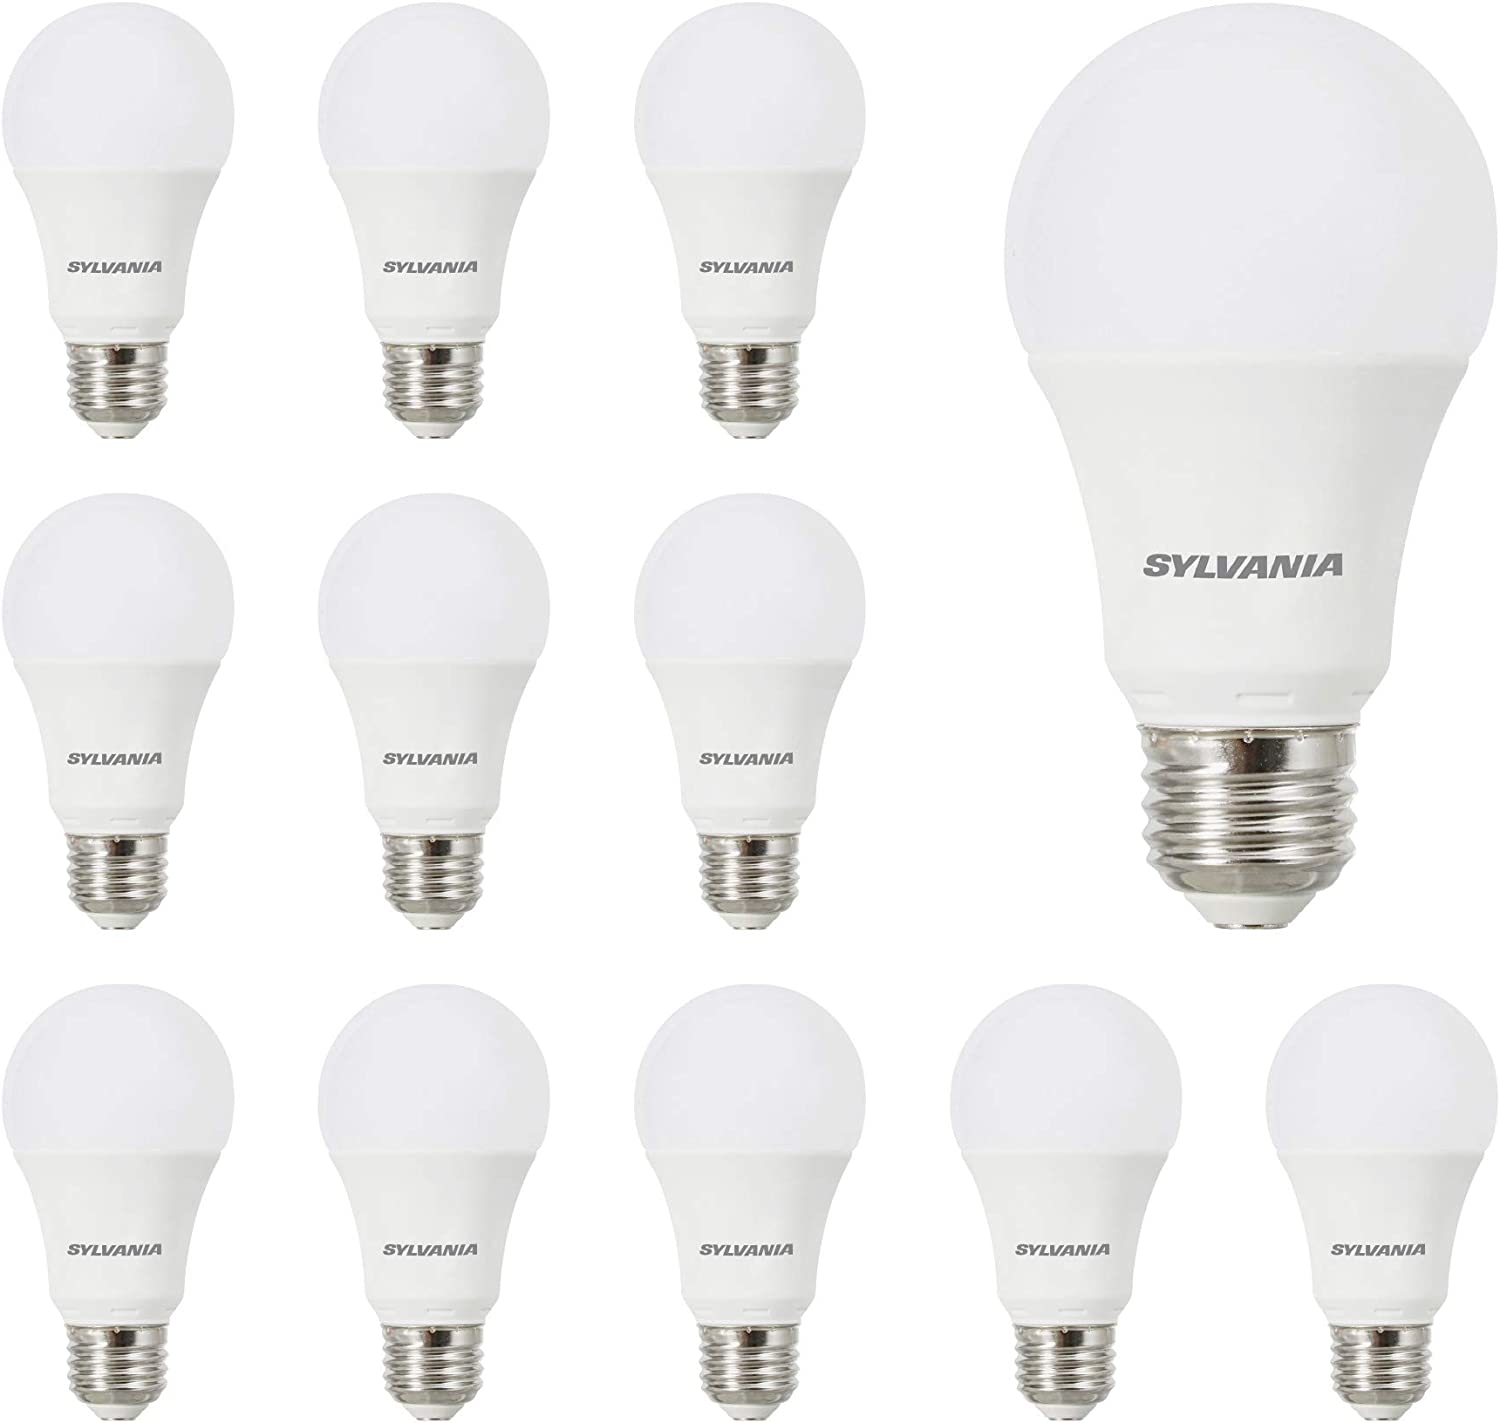 SYLVANIA General Lighting 40205 14 (100W Watt Equivalent), A19 Daylight Non-Dimmable 12 Pack LED Light Bulb